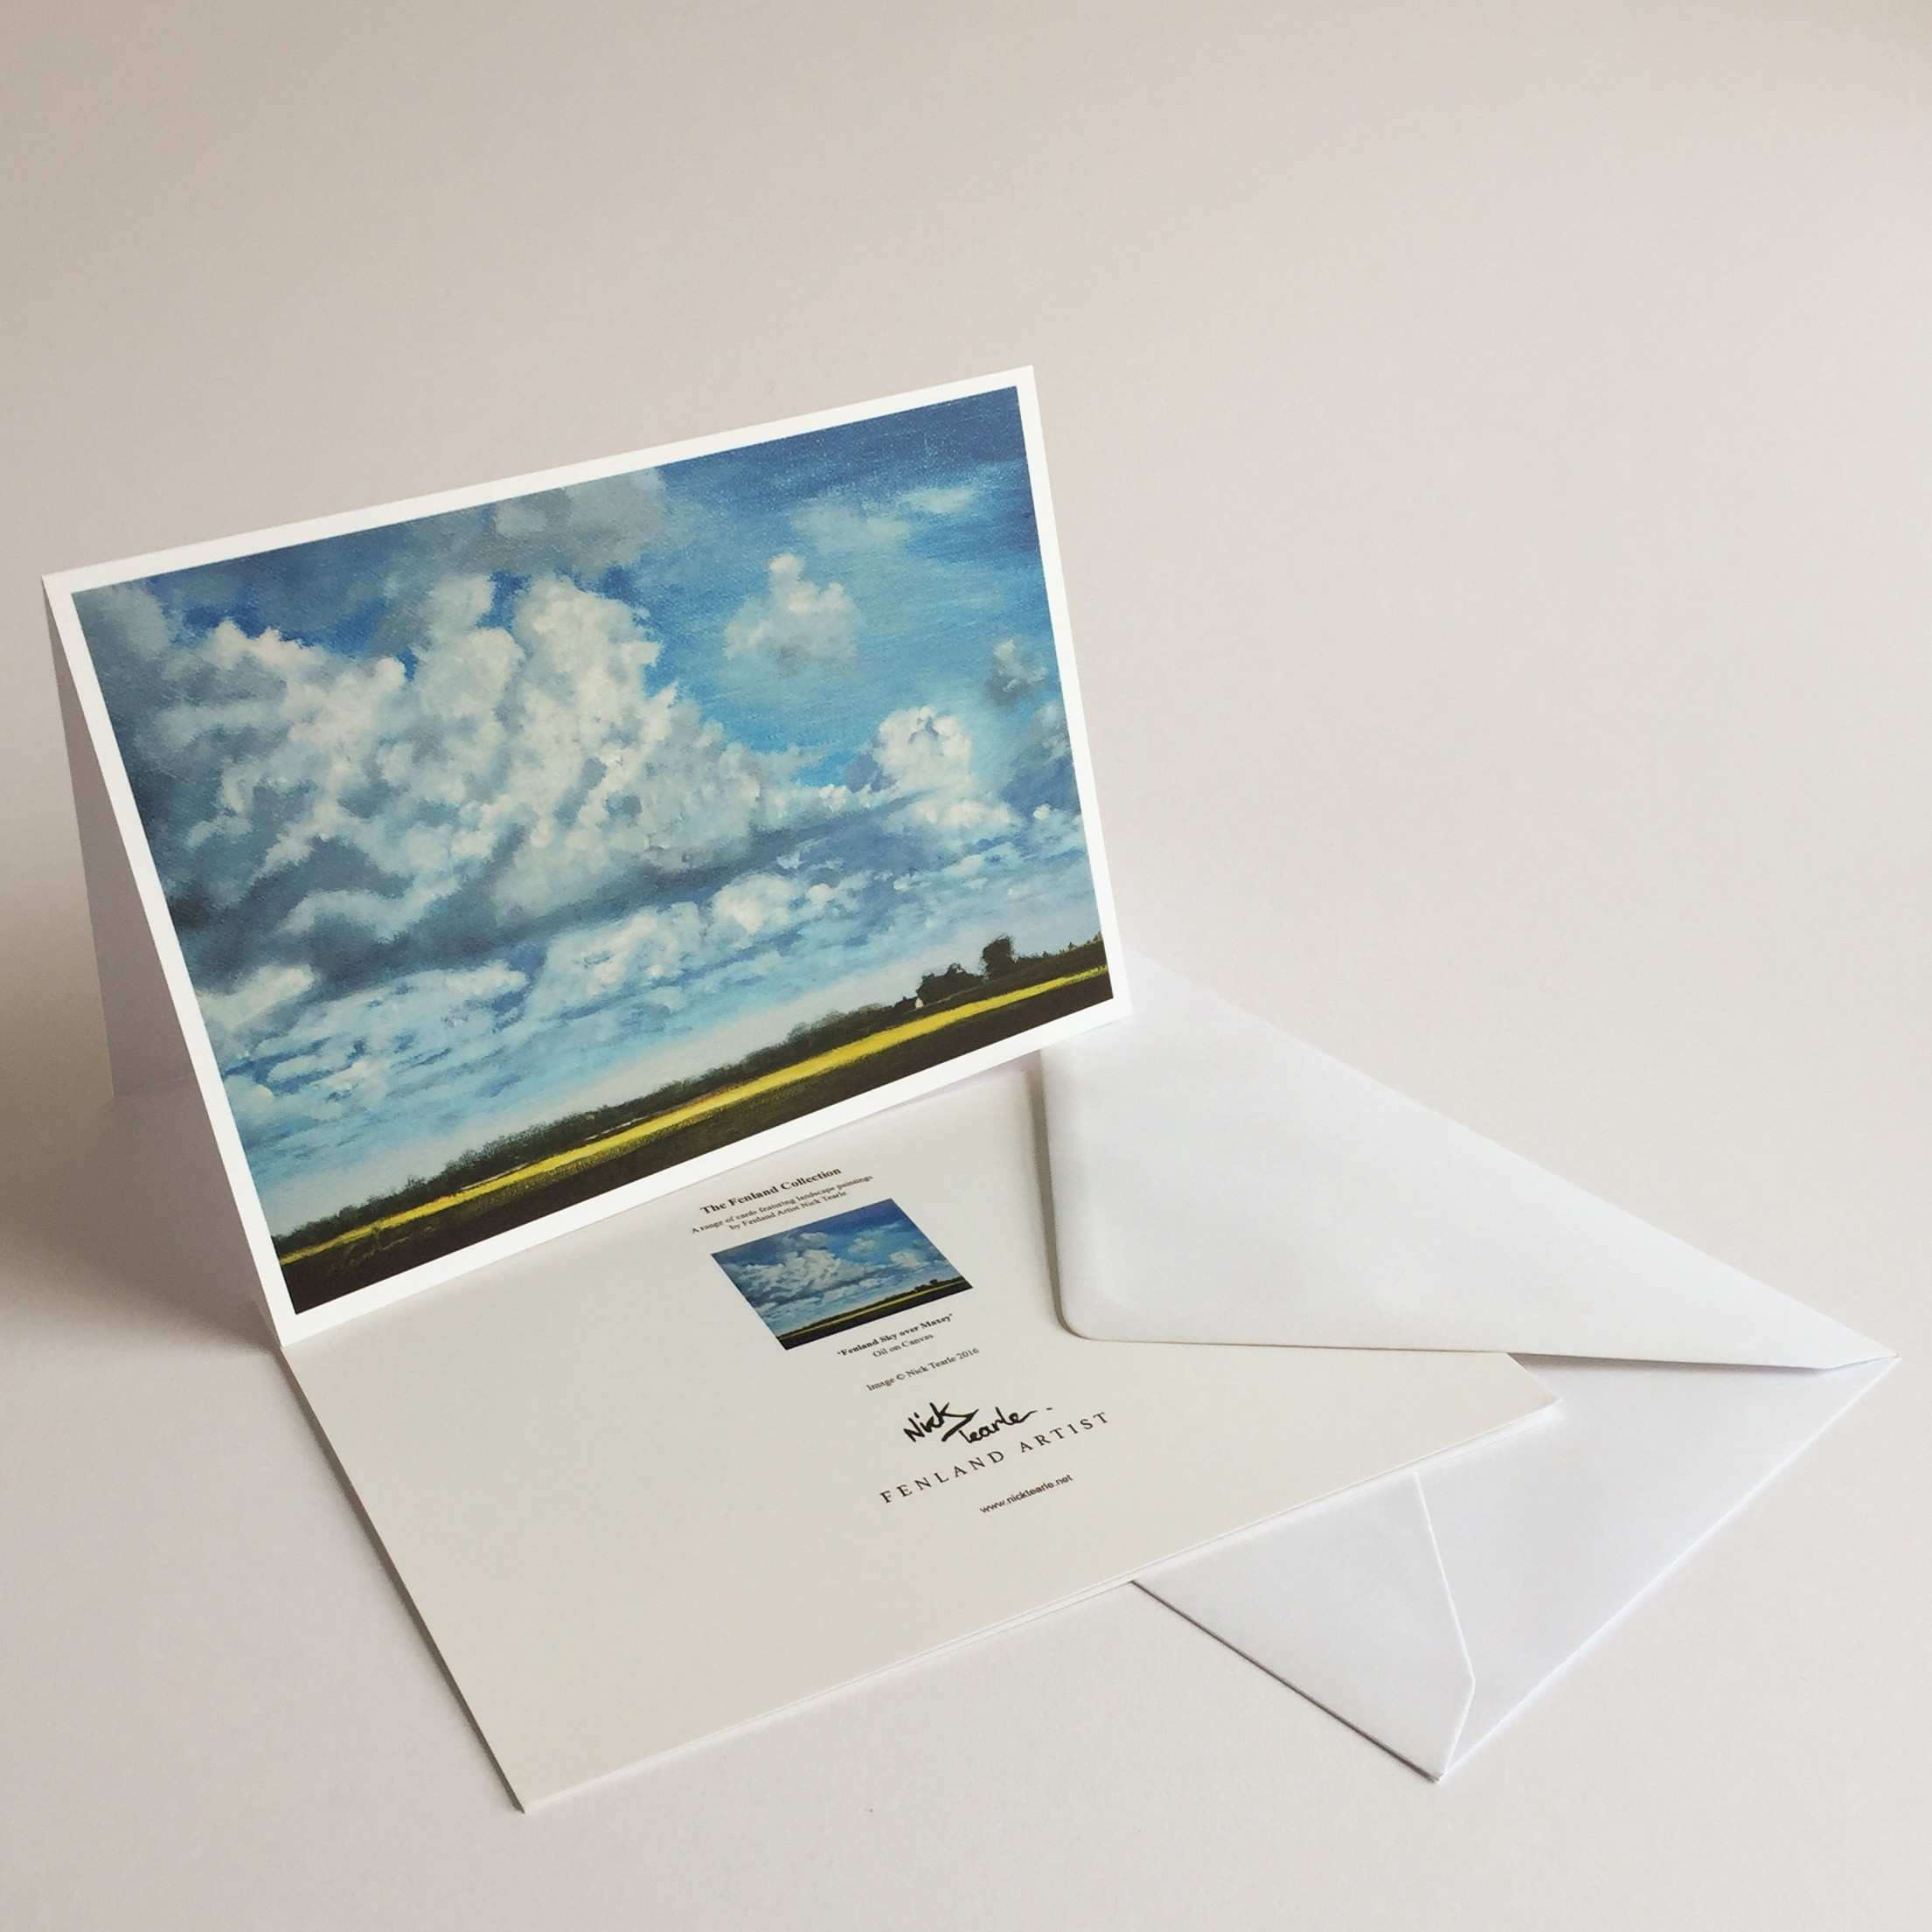 Blank Greetings Card – Fenland Sky over Maxey – Nick Tearle